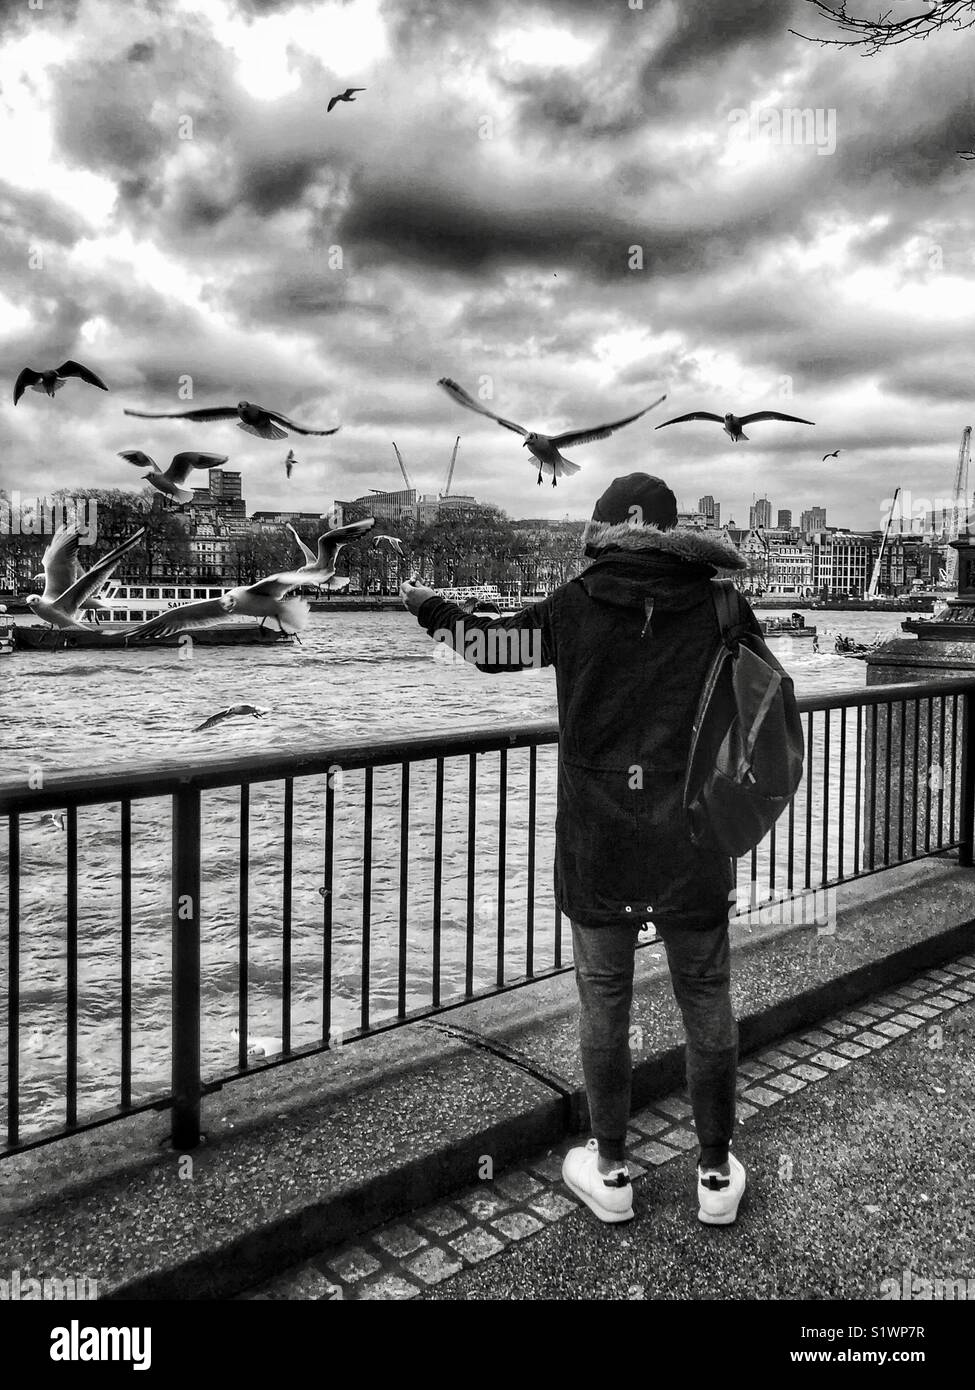 A man feeding holding his hand out to feed seagulls, as the birds fly around him. - Stock Image